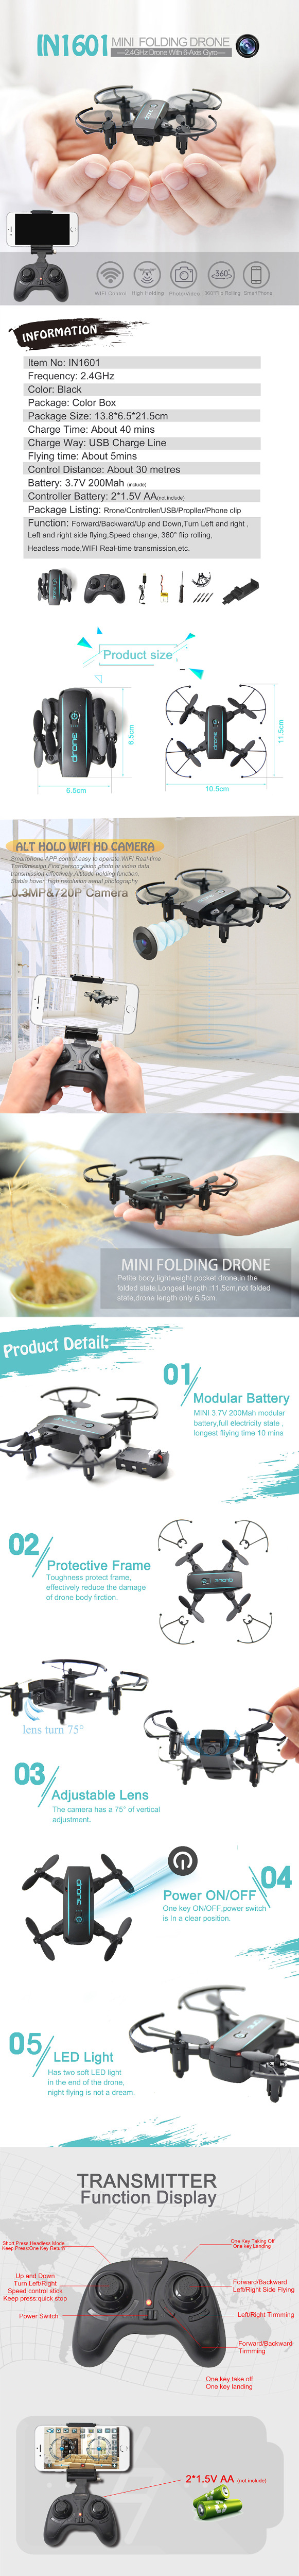 JMT 1601 Mini Foldable Drones with Camera HD 0.3MP 2MP Real Time Video Altitude Hold Drone WIFI FPV RC Quadcopter Toys Drone 1